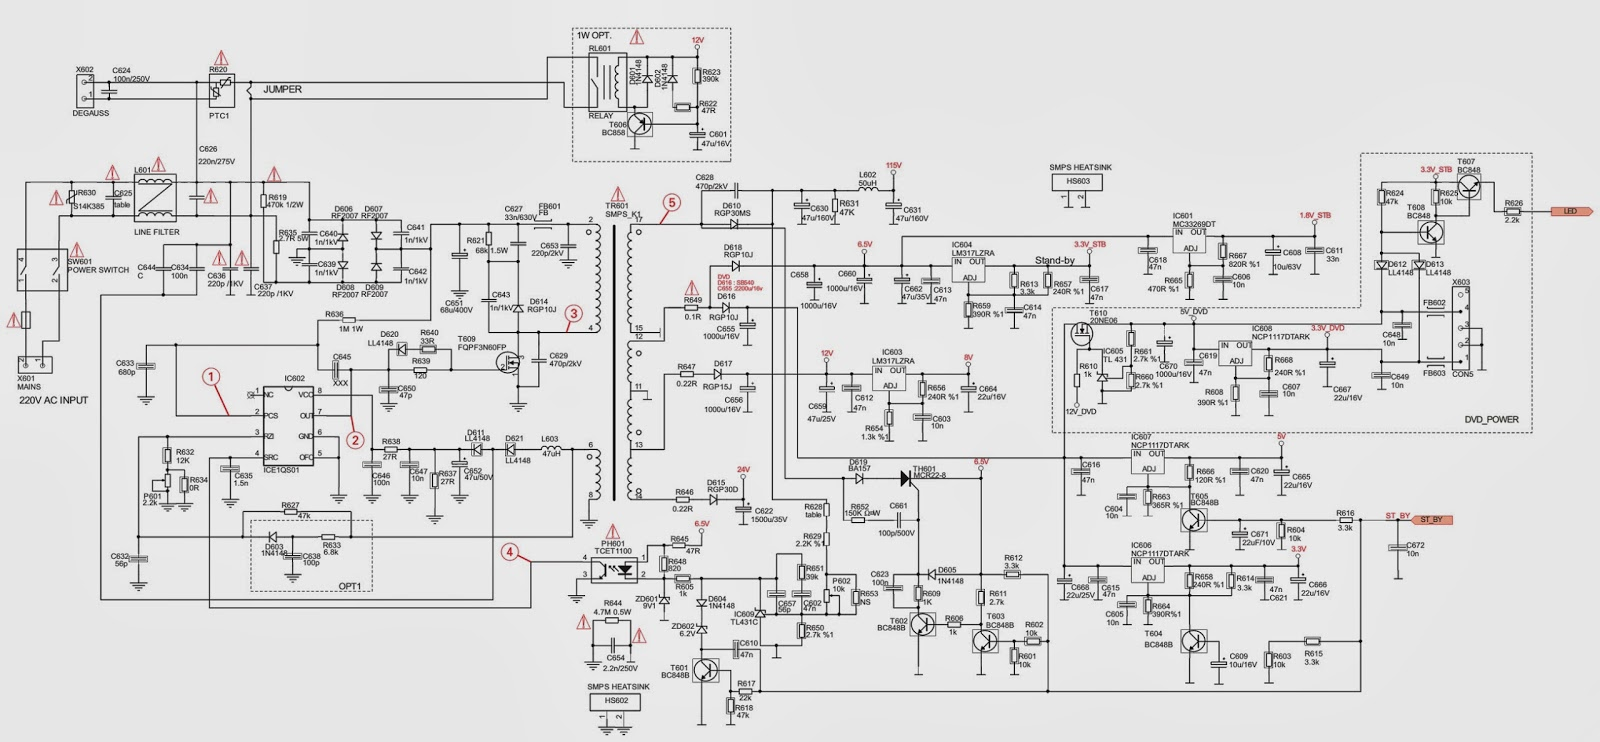 smps power supply circuit diagram further smps power supply circuit wiring harness engine module 35493 fits bmw 1 series e82e88 [ 1600 x 742 Pixel ]